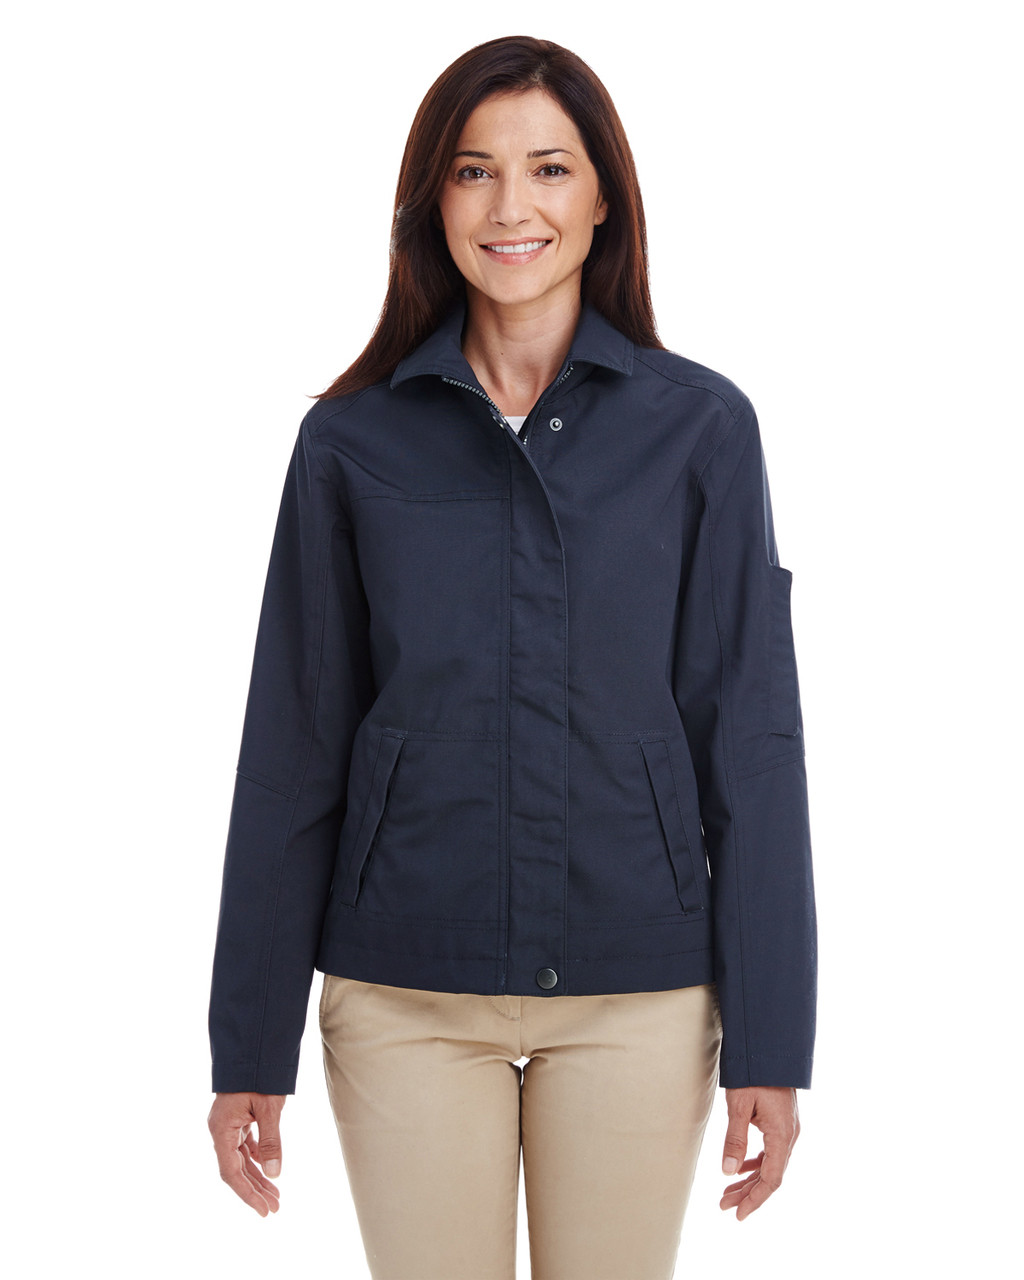 Dark Navy - M705W Harriton Ladies' Auxiliary Canvas Work Jacket